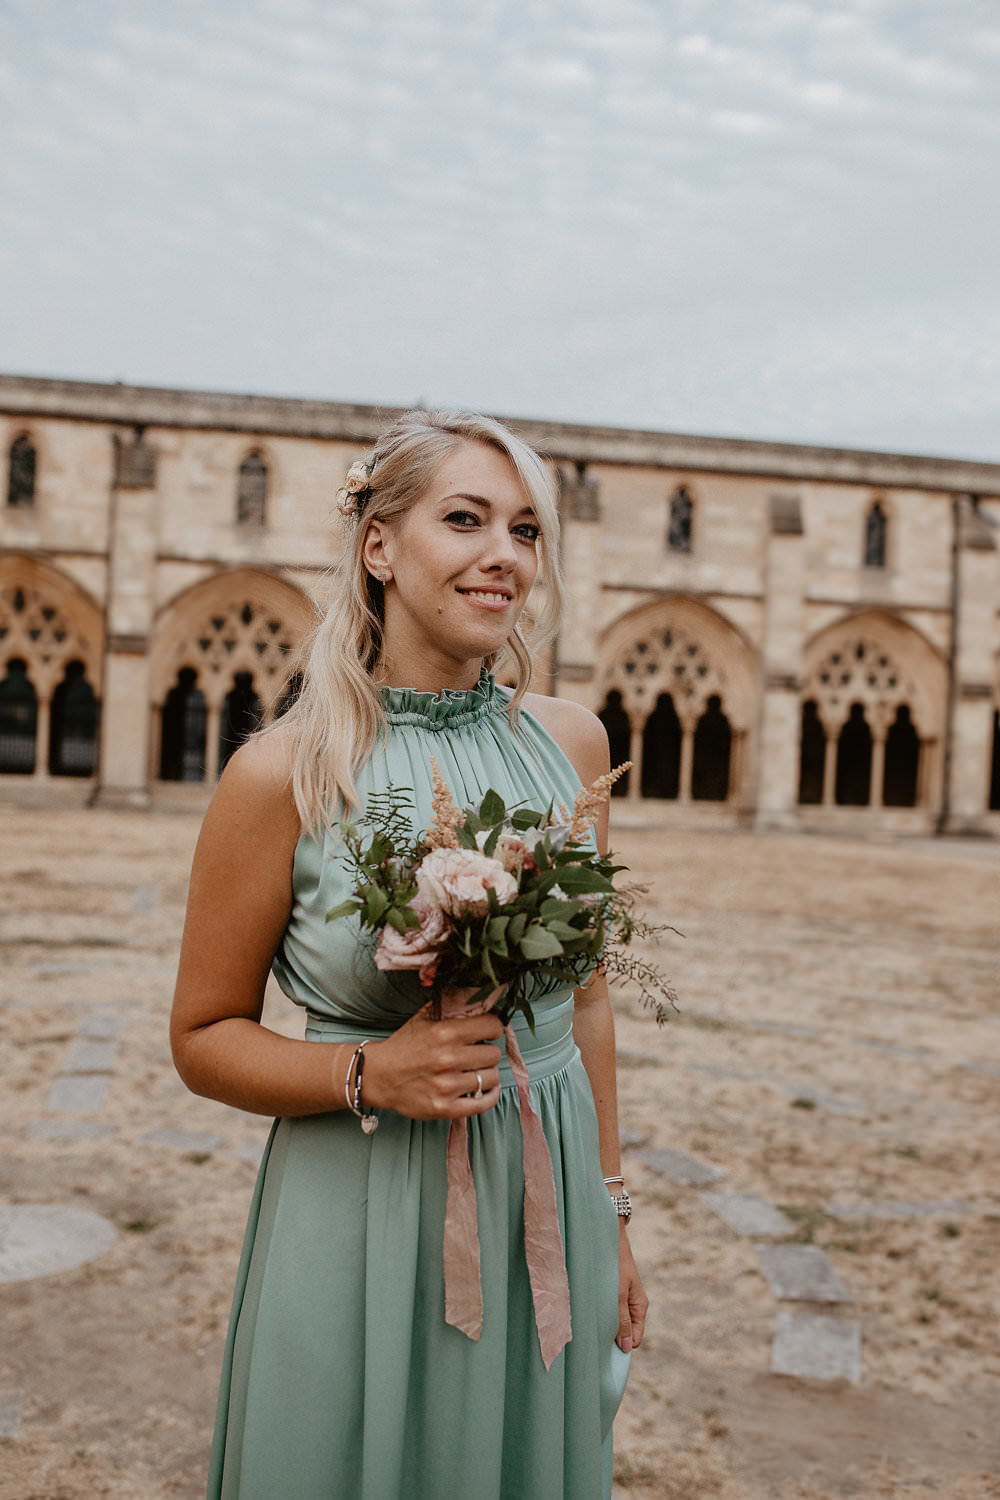 Pale Sage Green High Neck Maxi Long Dresses Bridesmaids Norwich Cathedral Wedding Camilla Andrea Photography